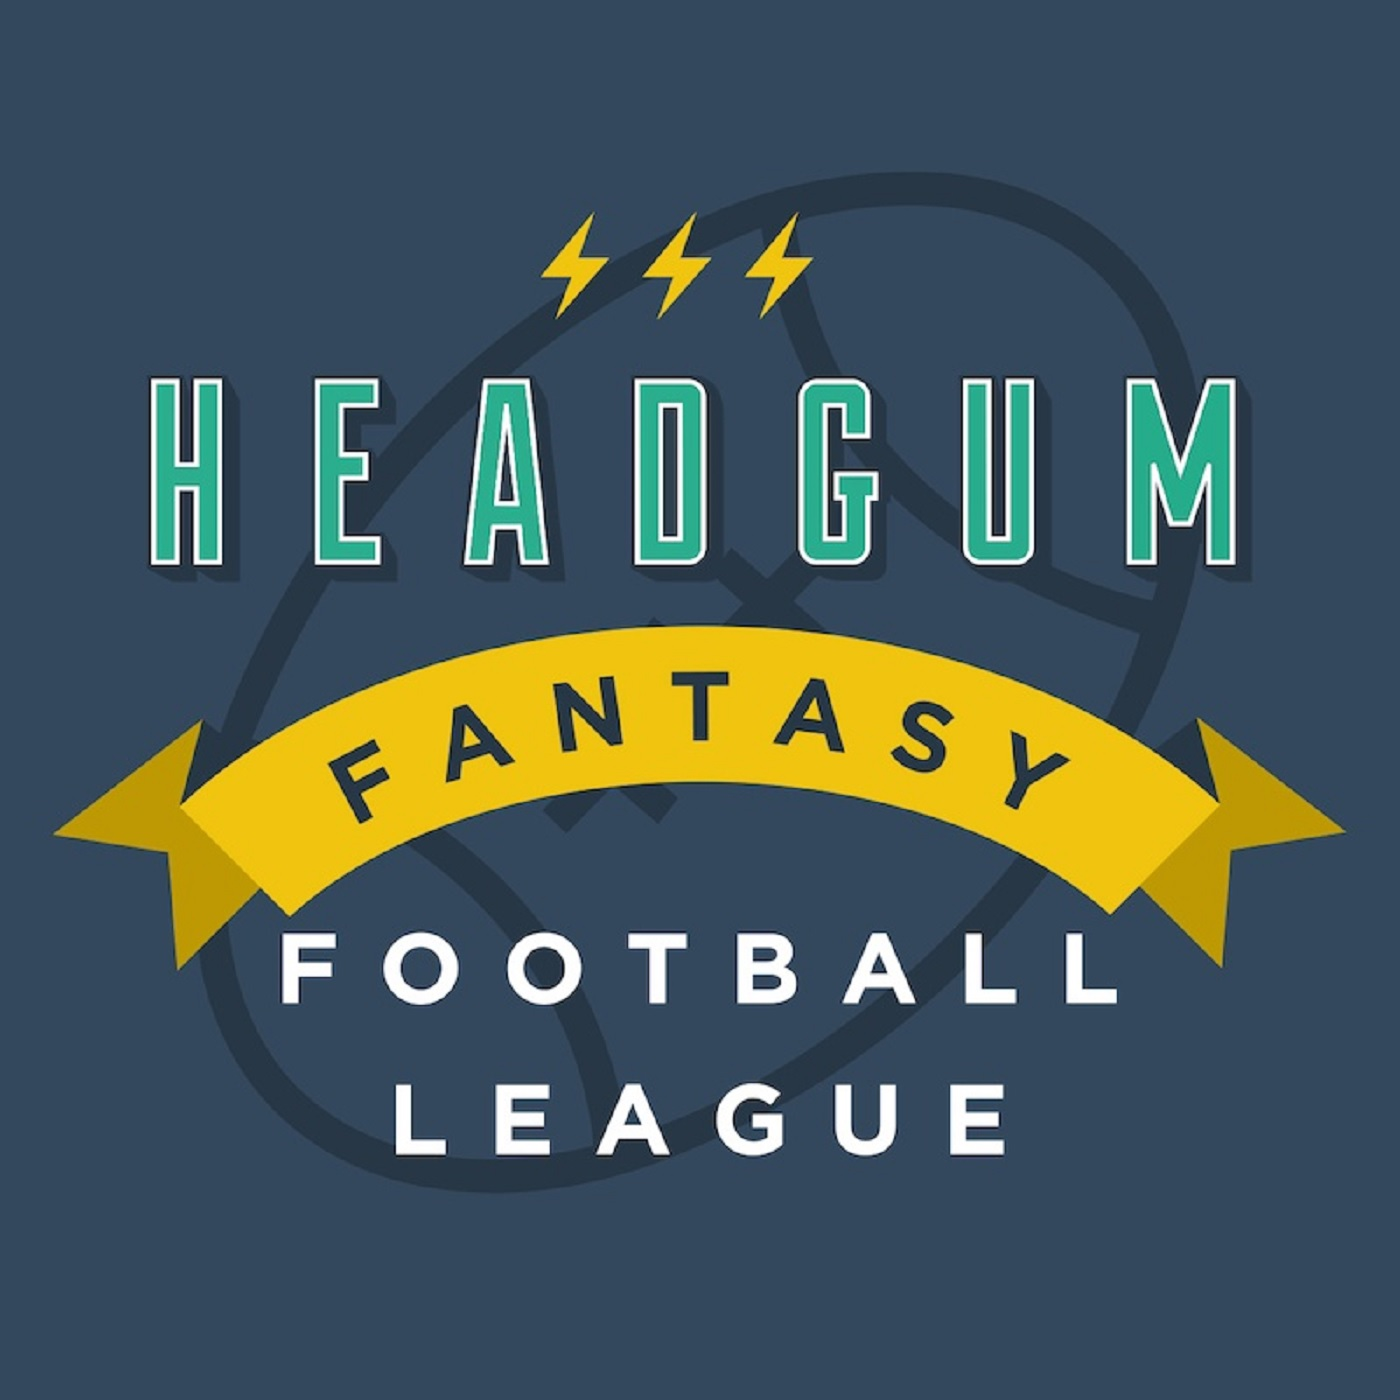 HeadGum Fantasy Football